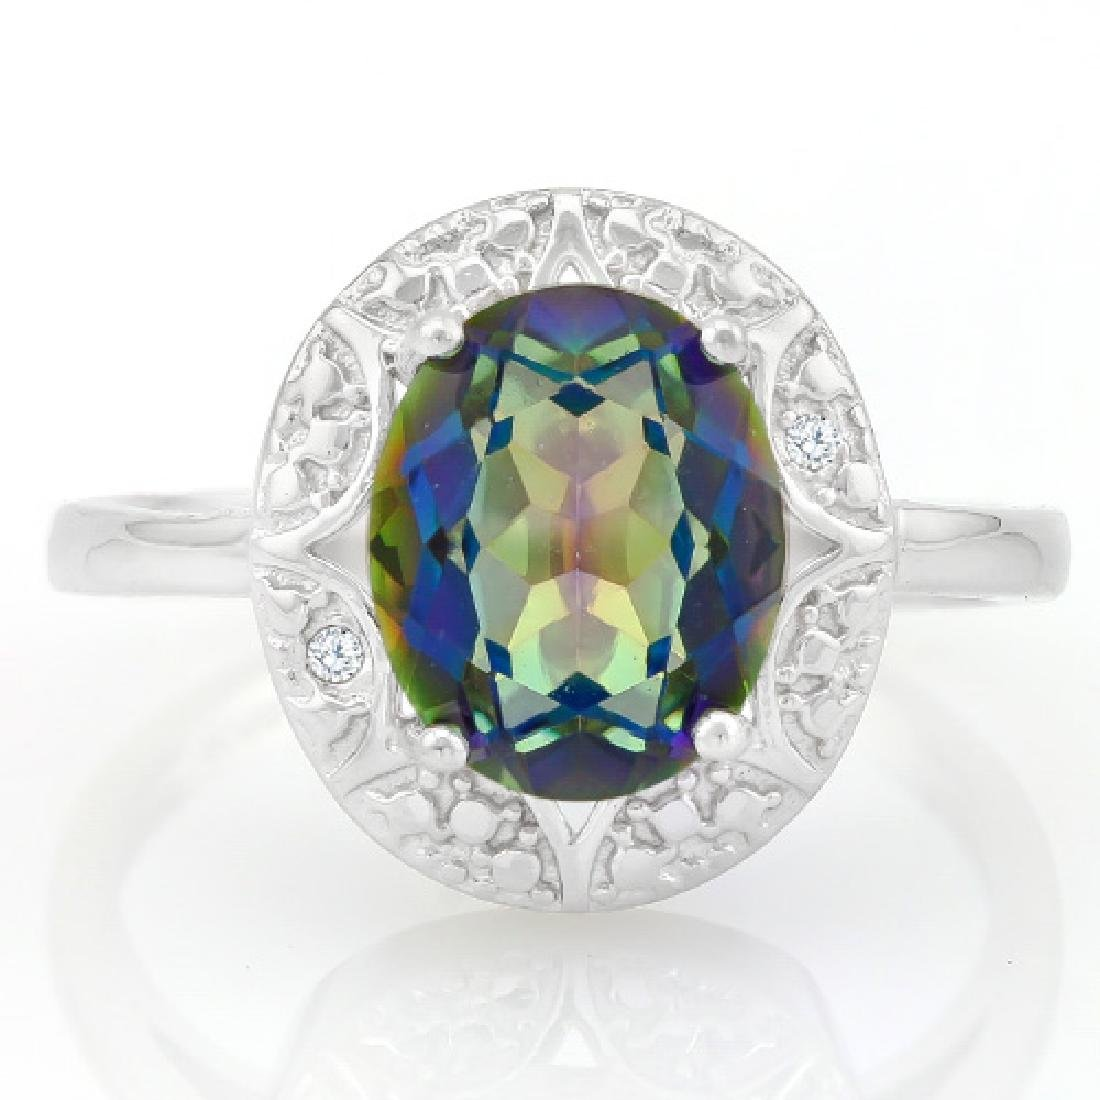 2 3/5 CARAT OCEAN MYSTIC GEMSTONE & GENUINE DIAMONDS 92